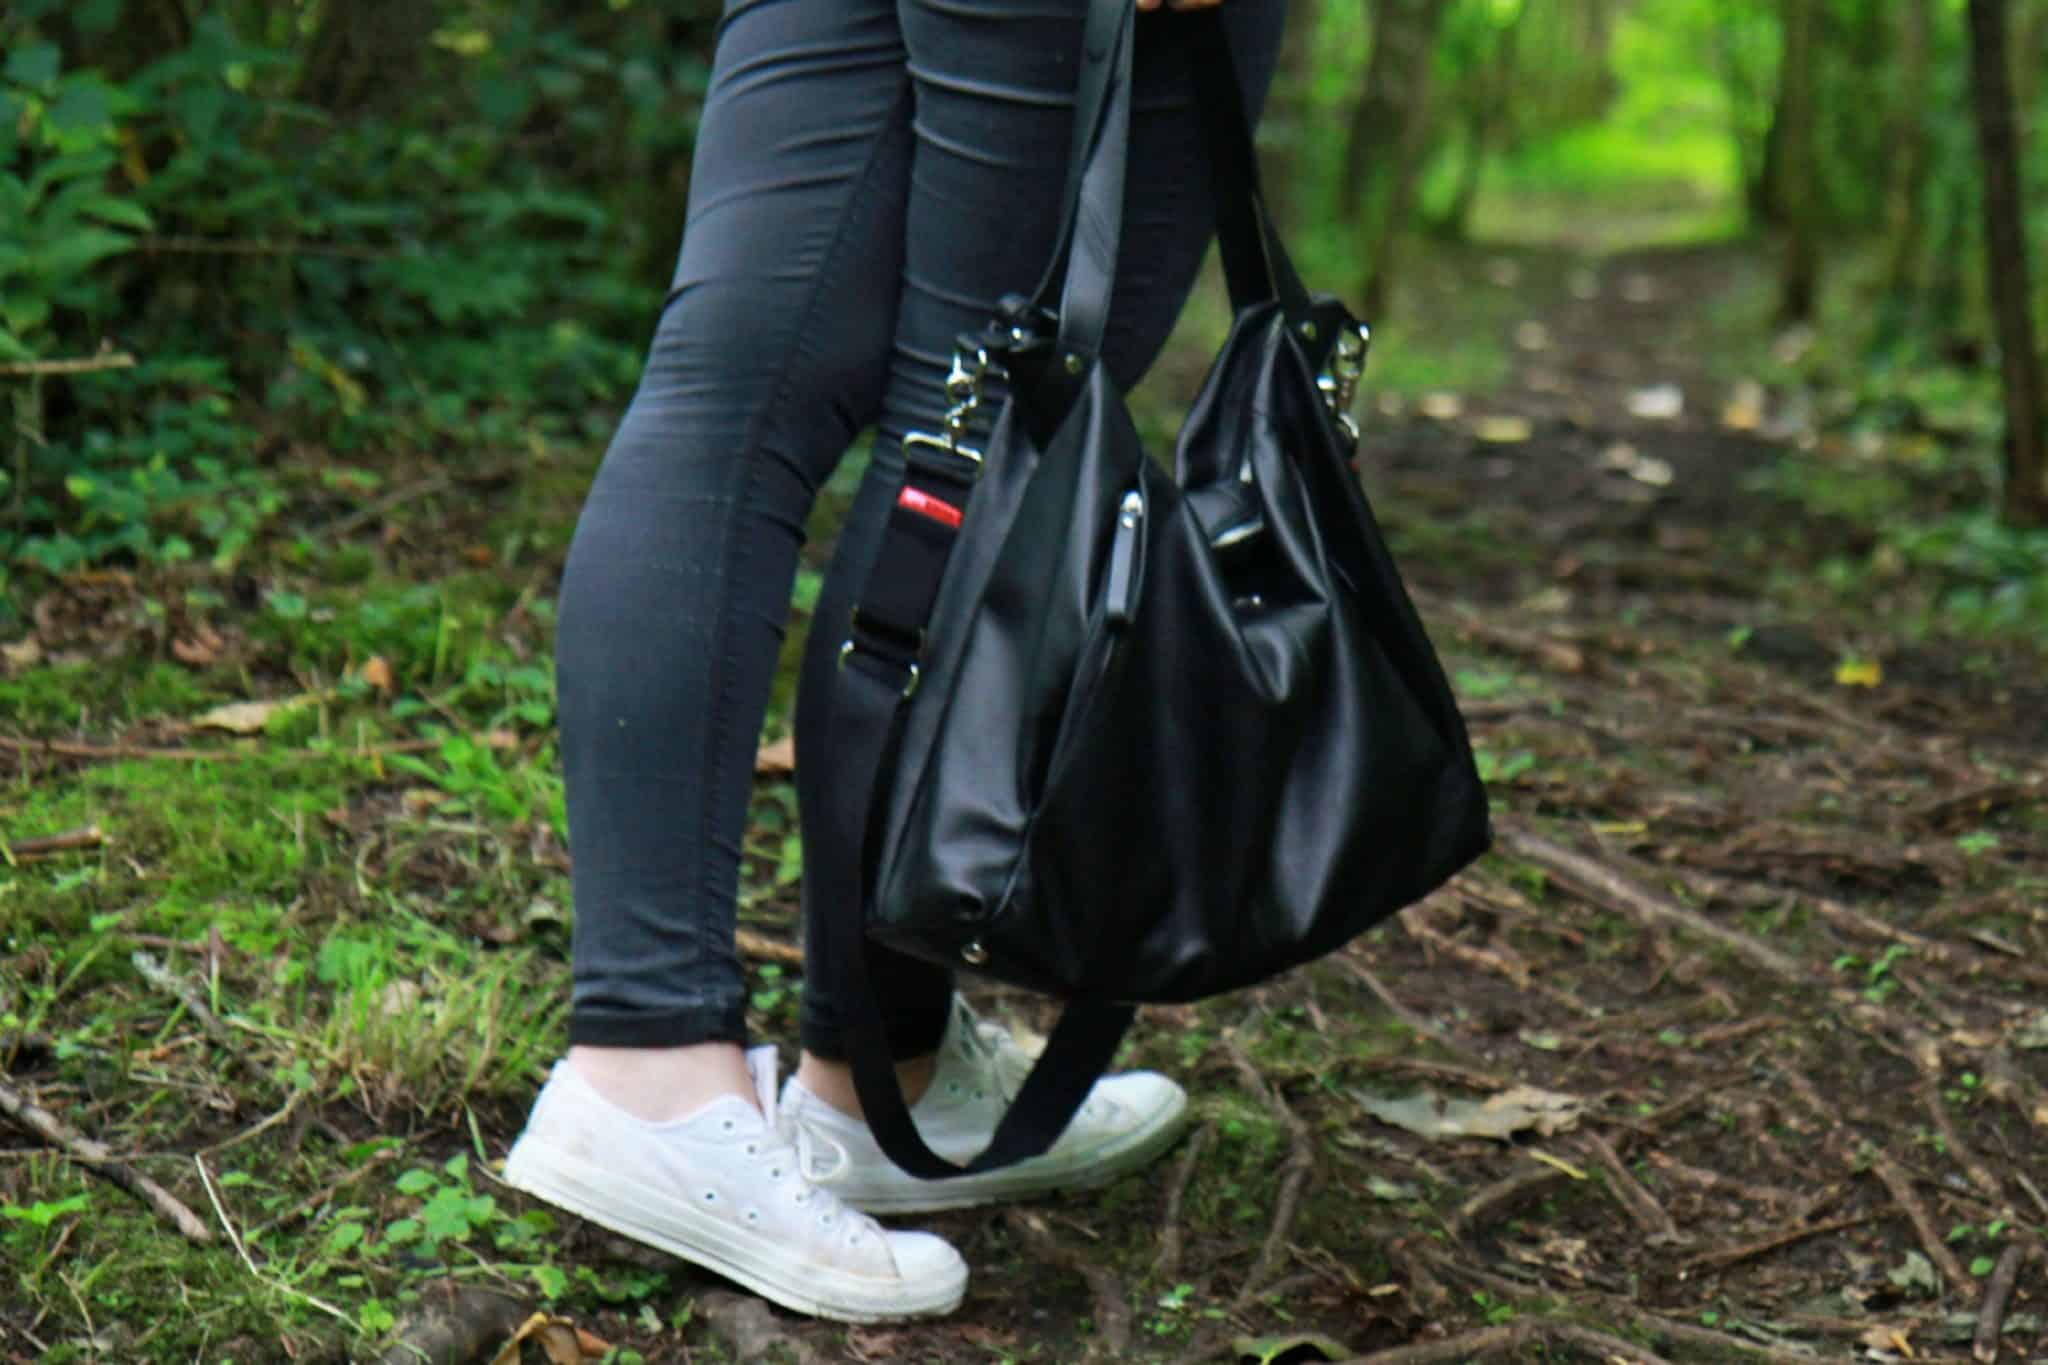 Wearing black topshop jeans, white converse and Storksak change bag